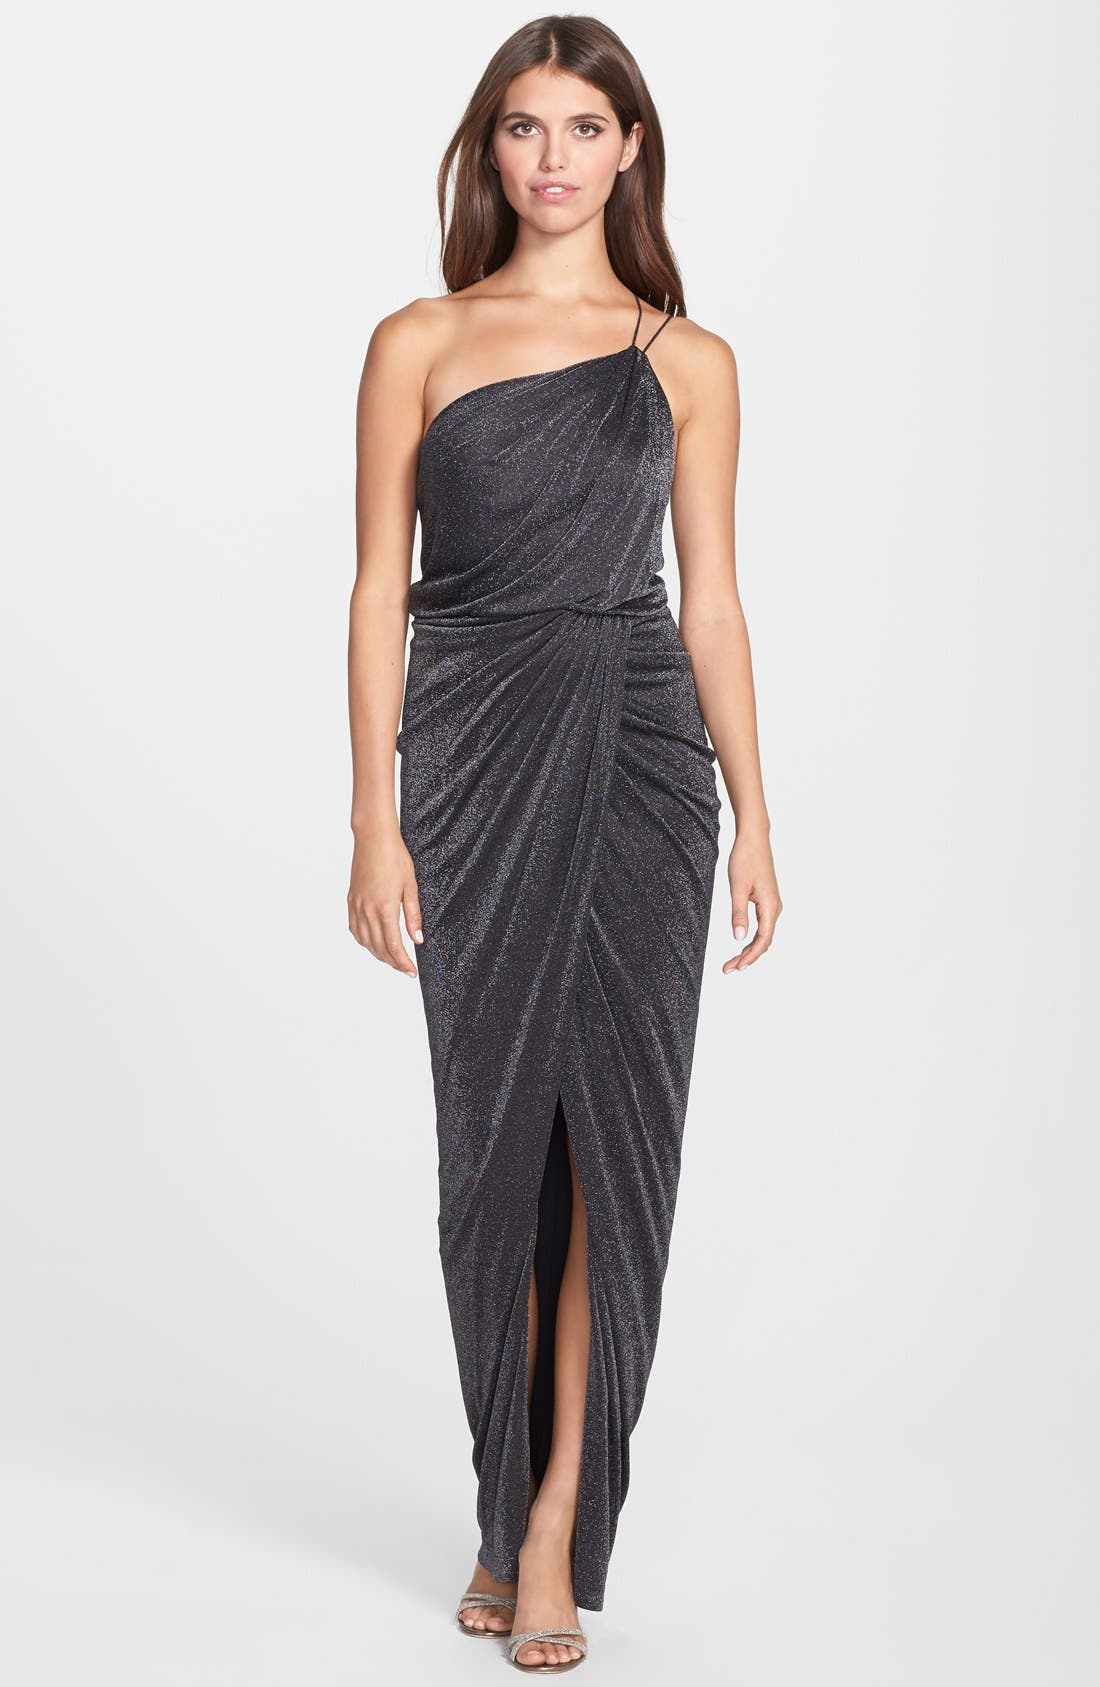 Alternate Image 1 Selected - Aidan by Aidan Mattox One Shoulder Metallic Knit Gown